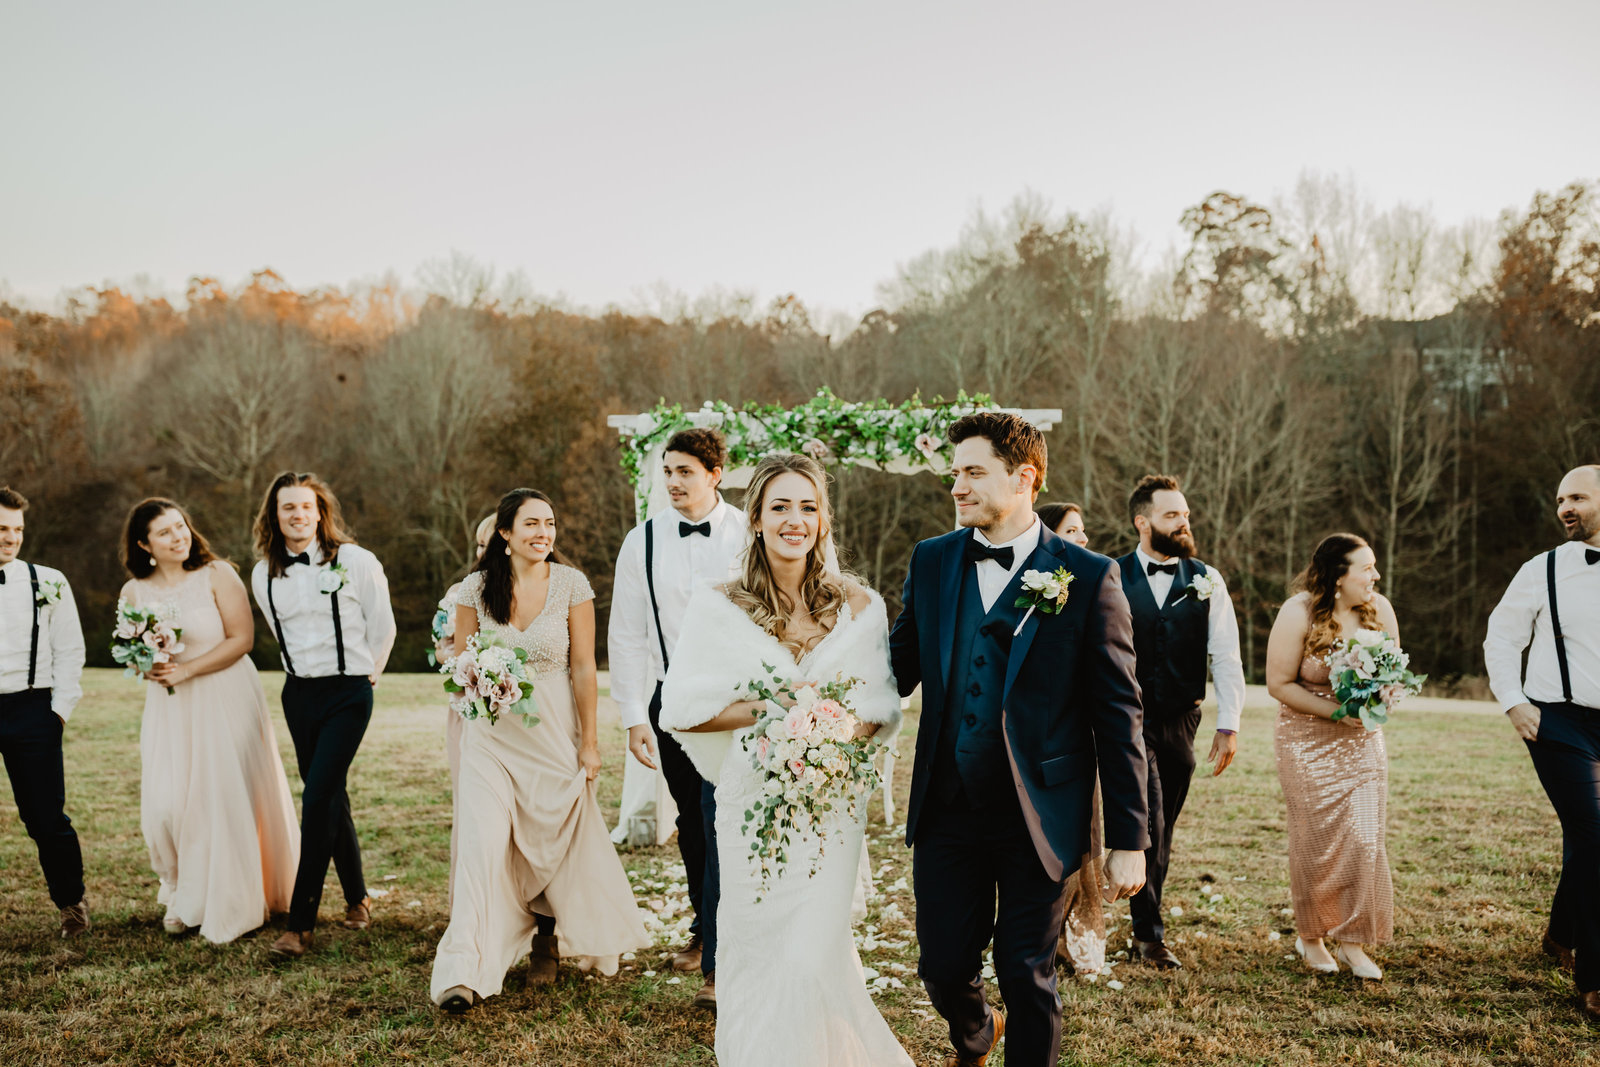 Bride looks at camera while walking with bridal party at Apple Woods Farm